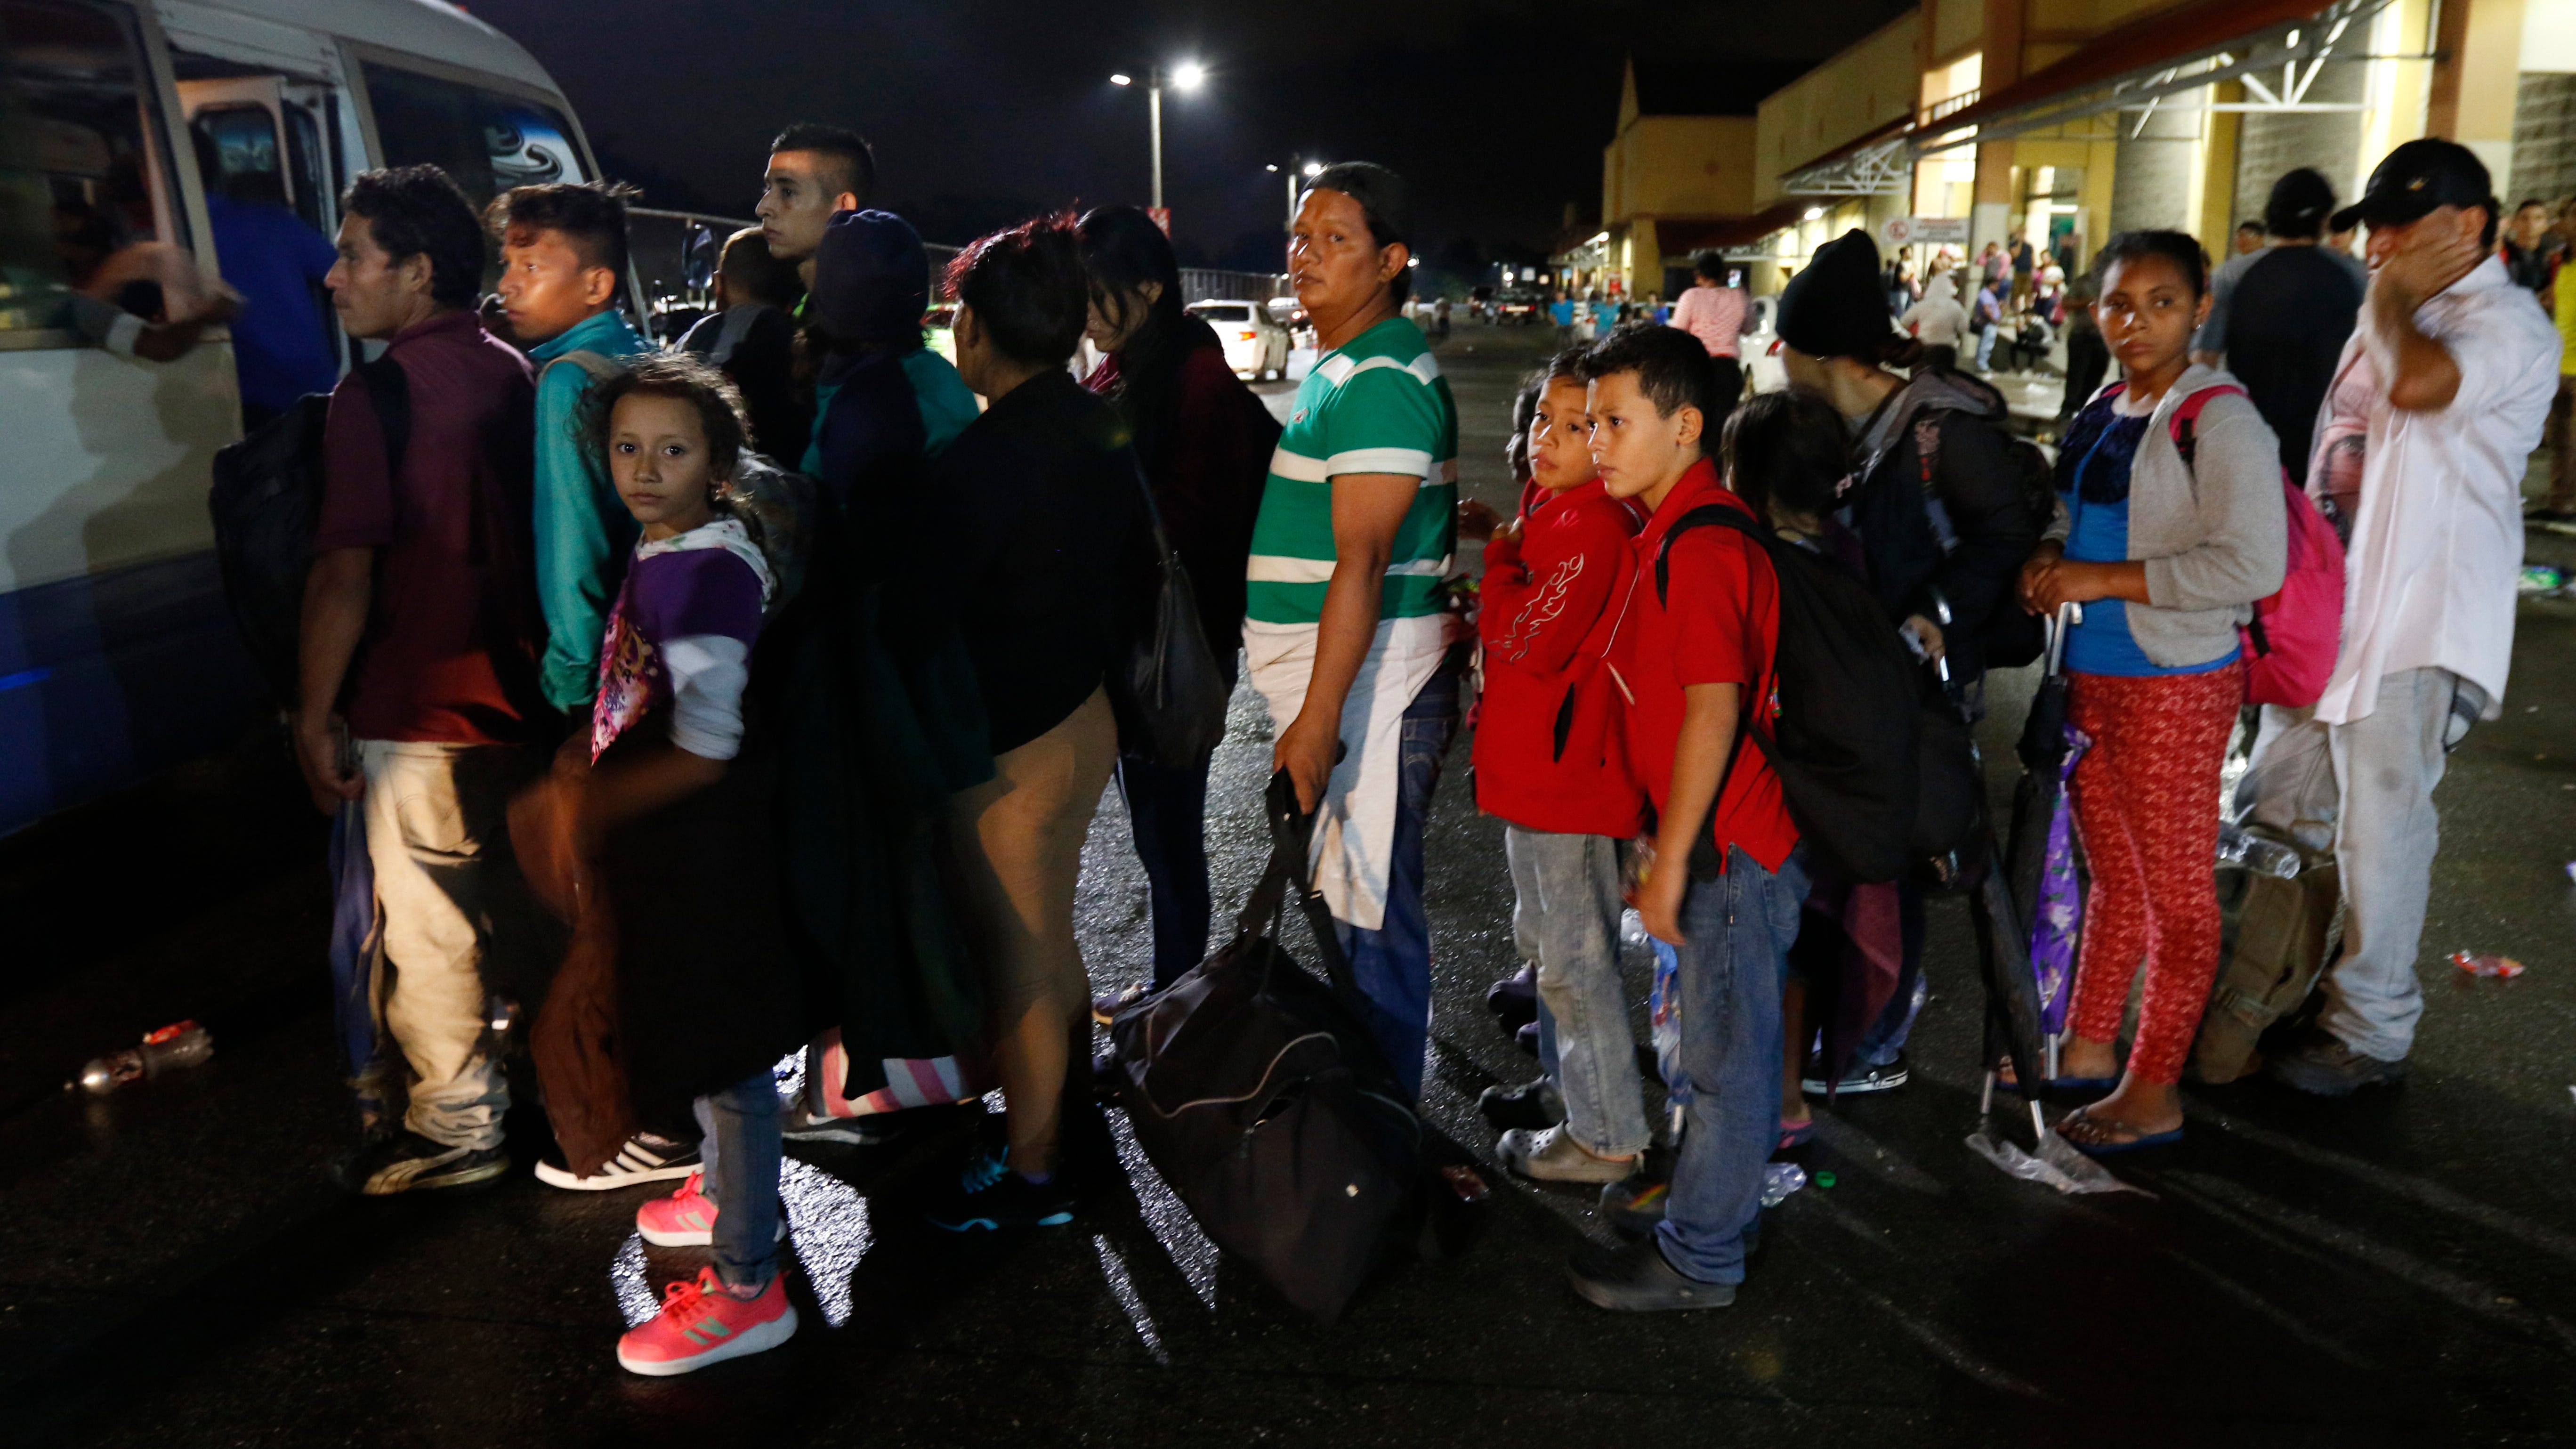 Migrants hoping to reach the U.S. wait in line to board a bus toward Honduras' border with Guatemala, as hundreds of migrants set off by bus or on foot from a main bus station in San Pedro Sula, Honduras, late Monday, Jan. 14, 2019. Yet another caravan of Central American migrants set out Monday from Honduras, seeking to reach the U.S. border following the same route followed by thousands on at least three caravans last year.